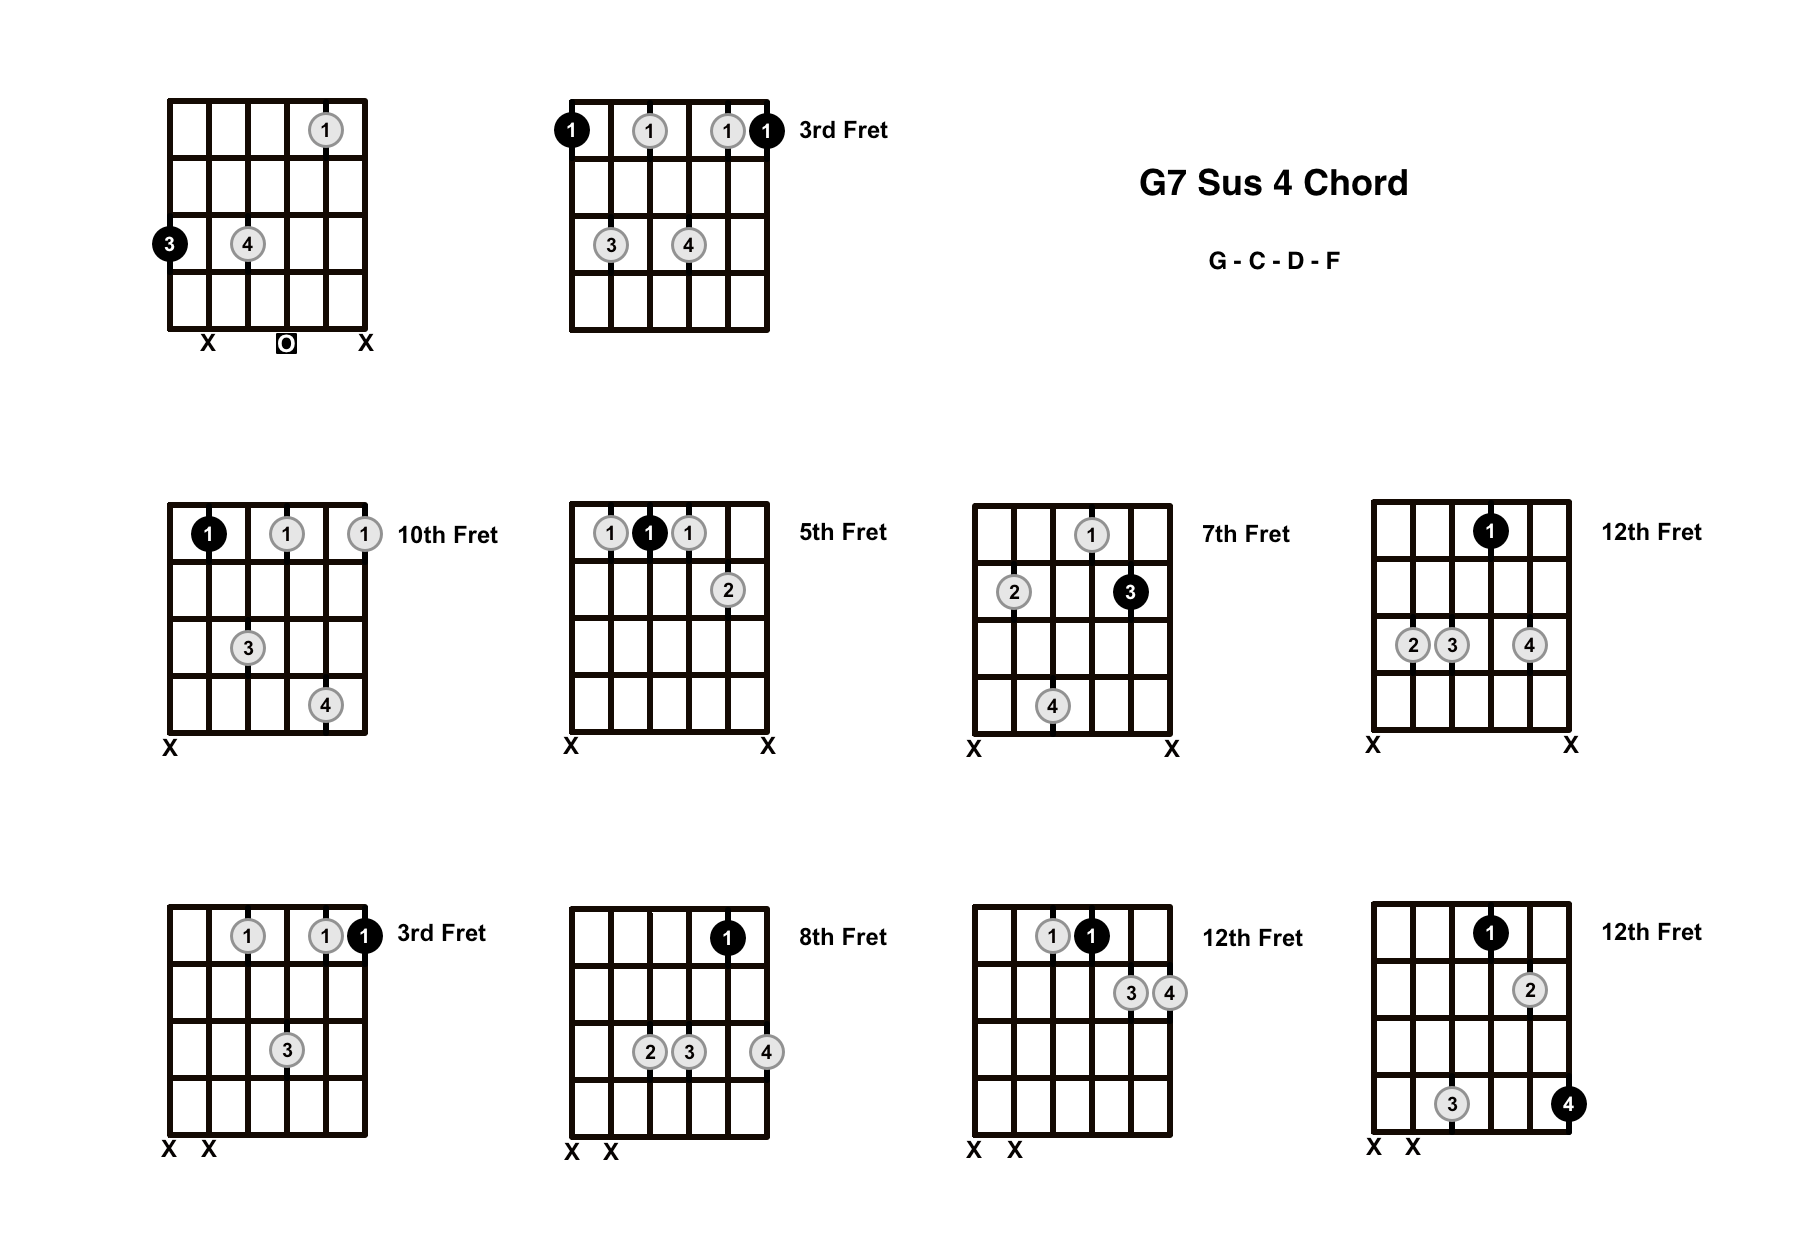 G7 Sus 4 Chord On The Guitar (G7 Suspended 4) – Diagrams, Finger Positions and Theory